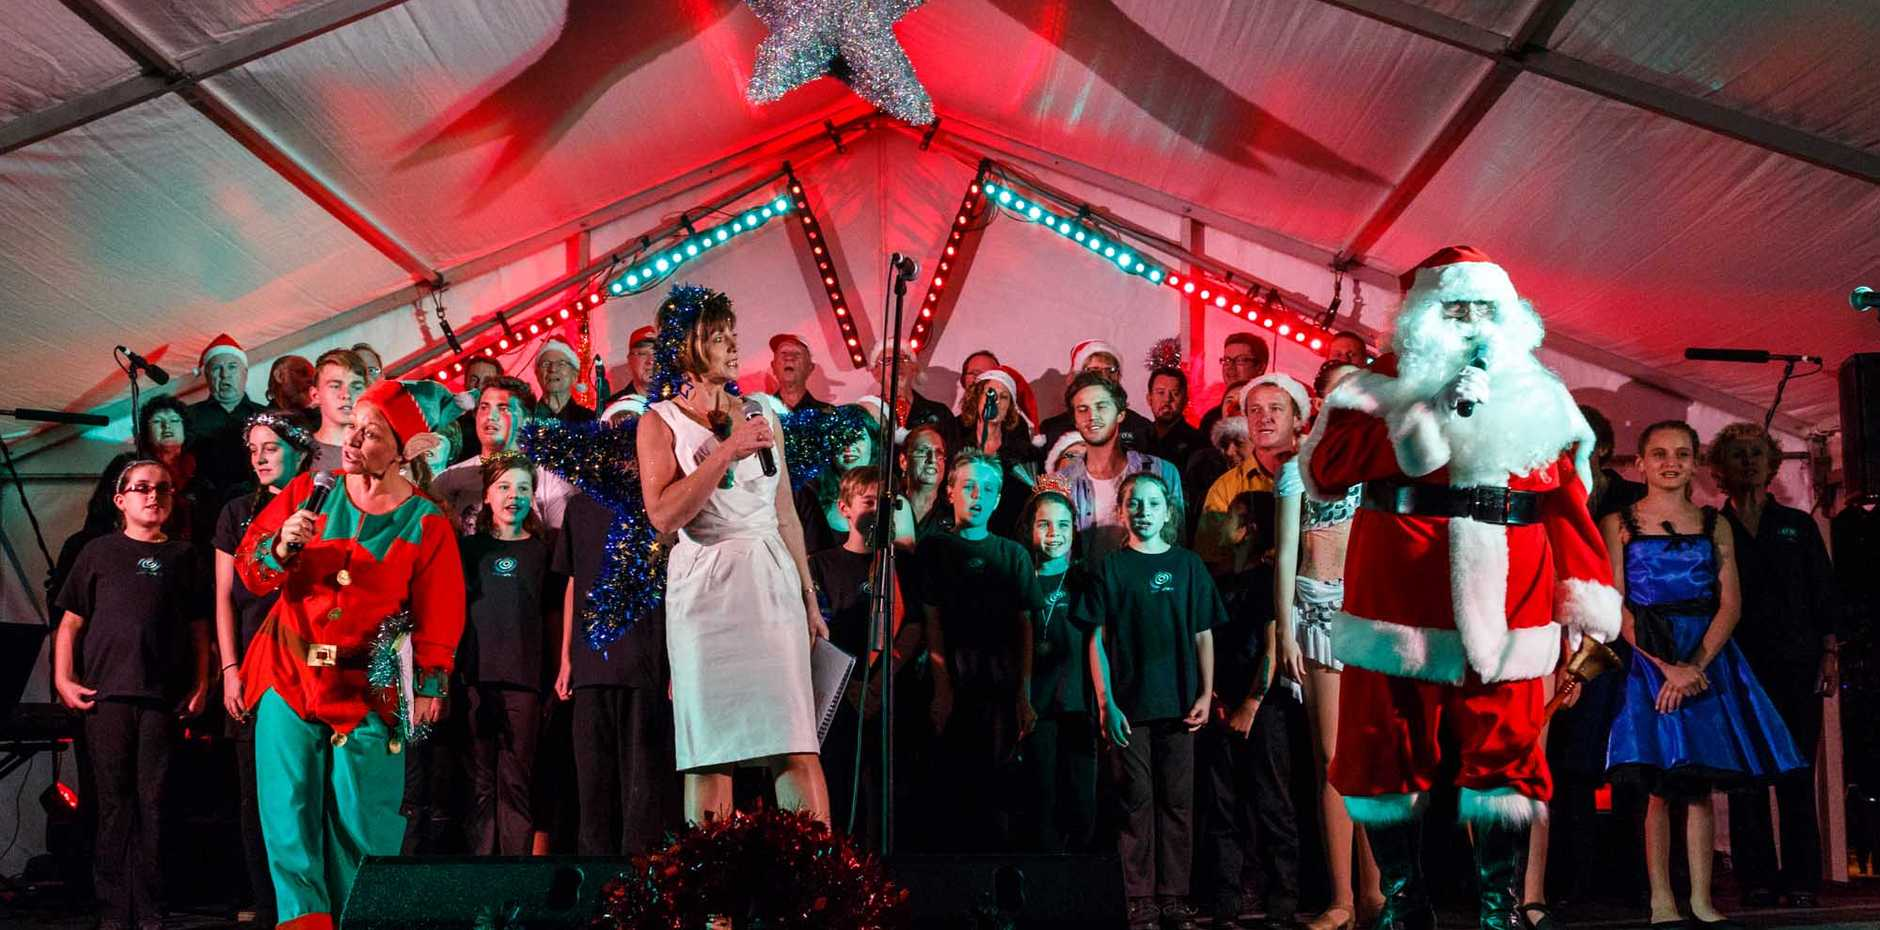 Share the spirit of Christmas Carols with friends and family